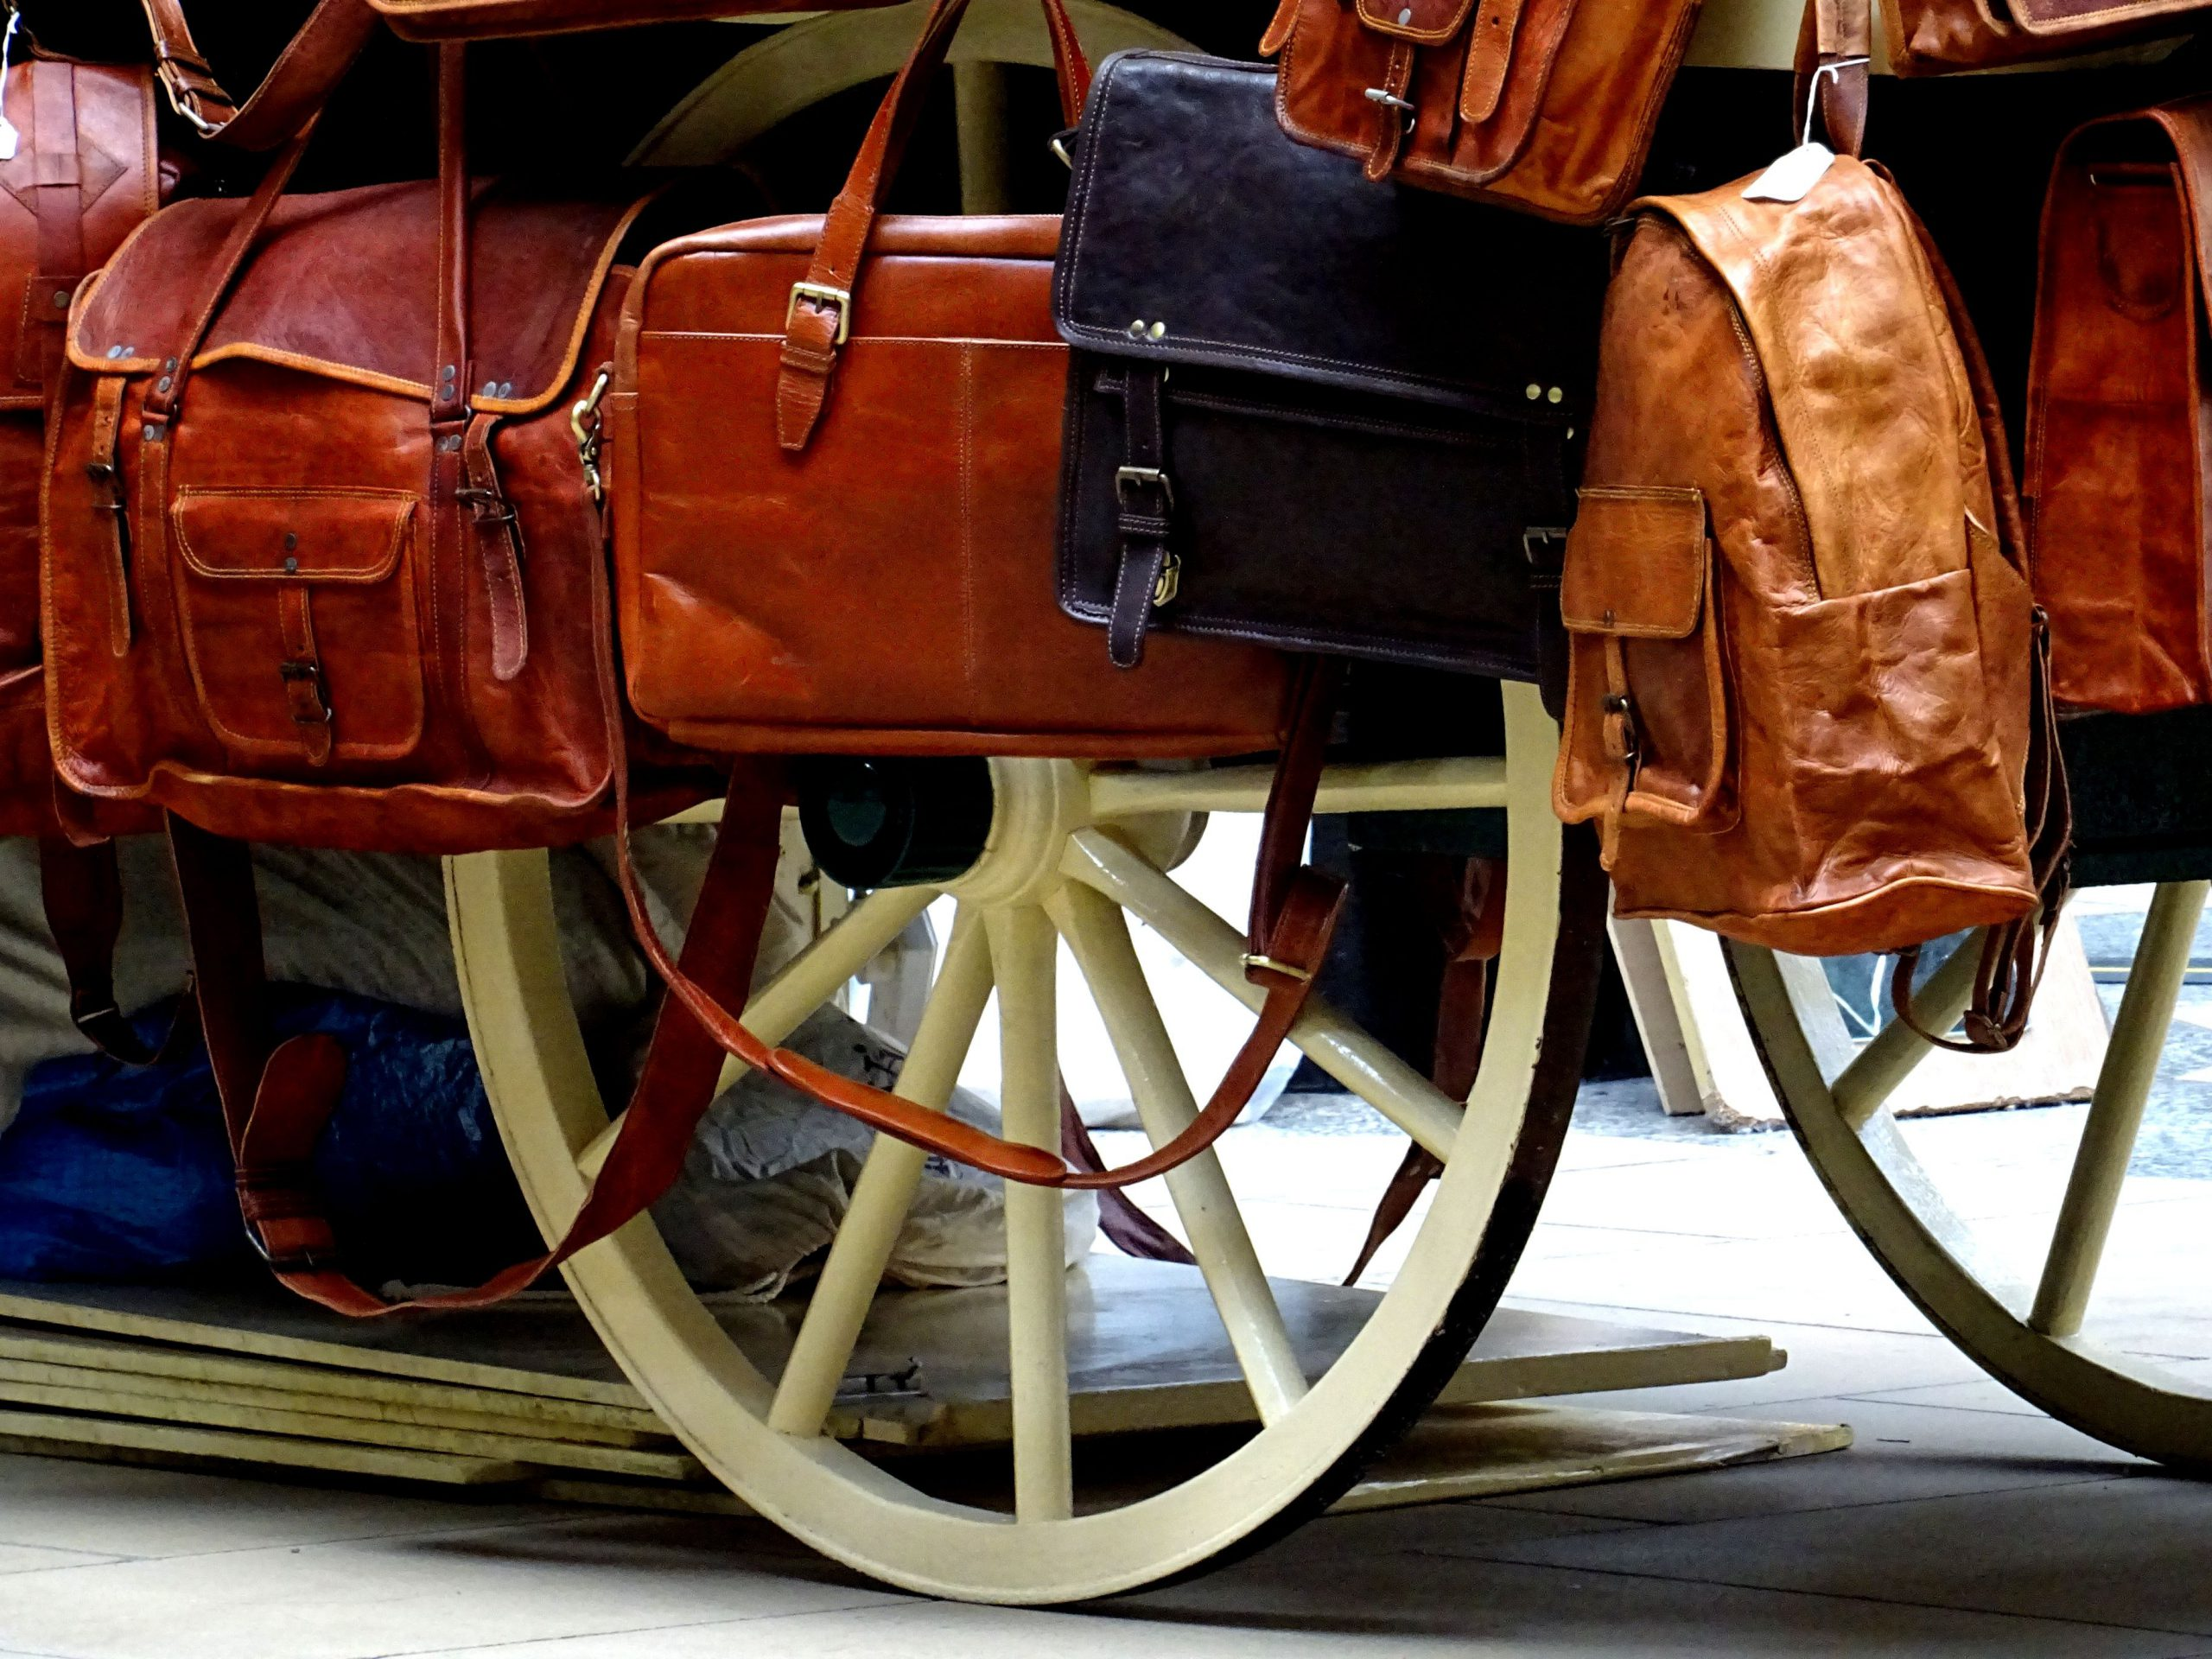 bags-brown-carriage-handle-575435